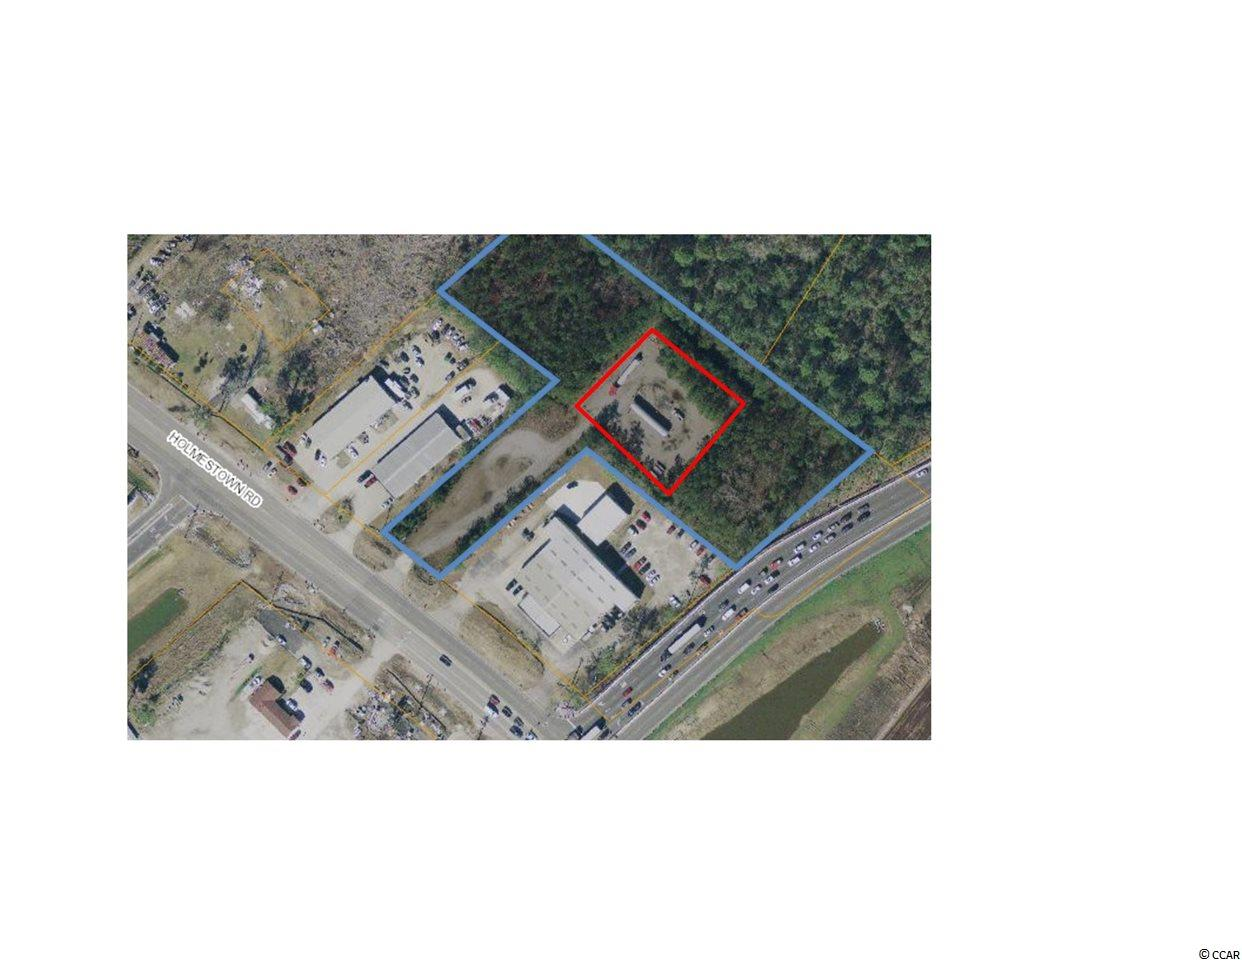 Fully fenced/barbed wire Limited Industrial Lot for Lease. Size is estimated to .6 of an acre. Perfect for boat/RV storage, transportation terminal facility, heavy equipment sales and service, lumber yard and many other suitable applications. At the intersection of Hwy 17 Bypass and Holmestown Road allowing easy access to the North and South parts of the Grandstrand.